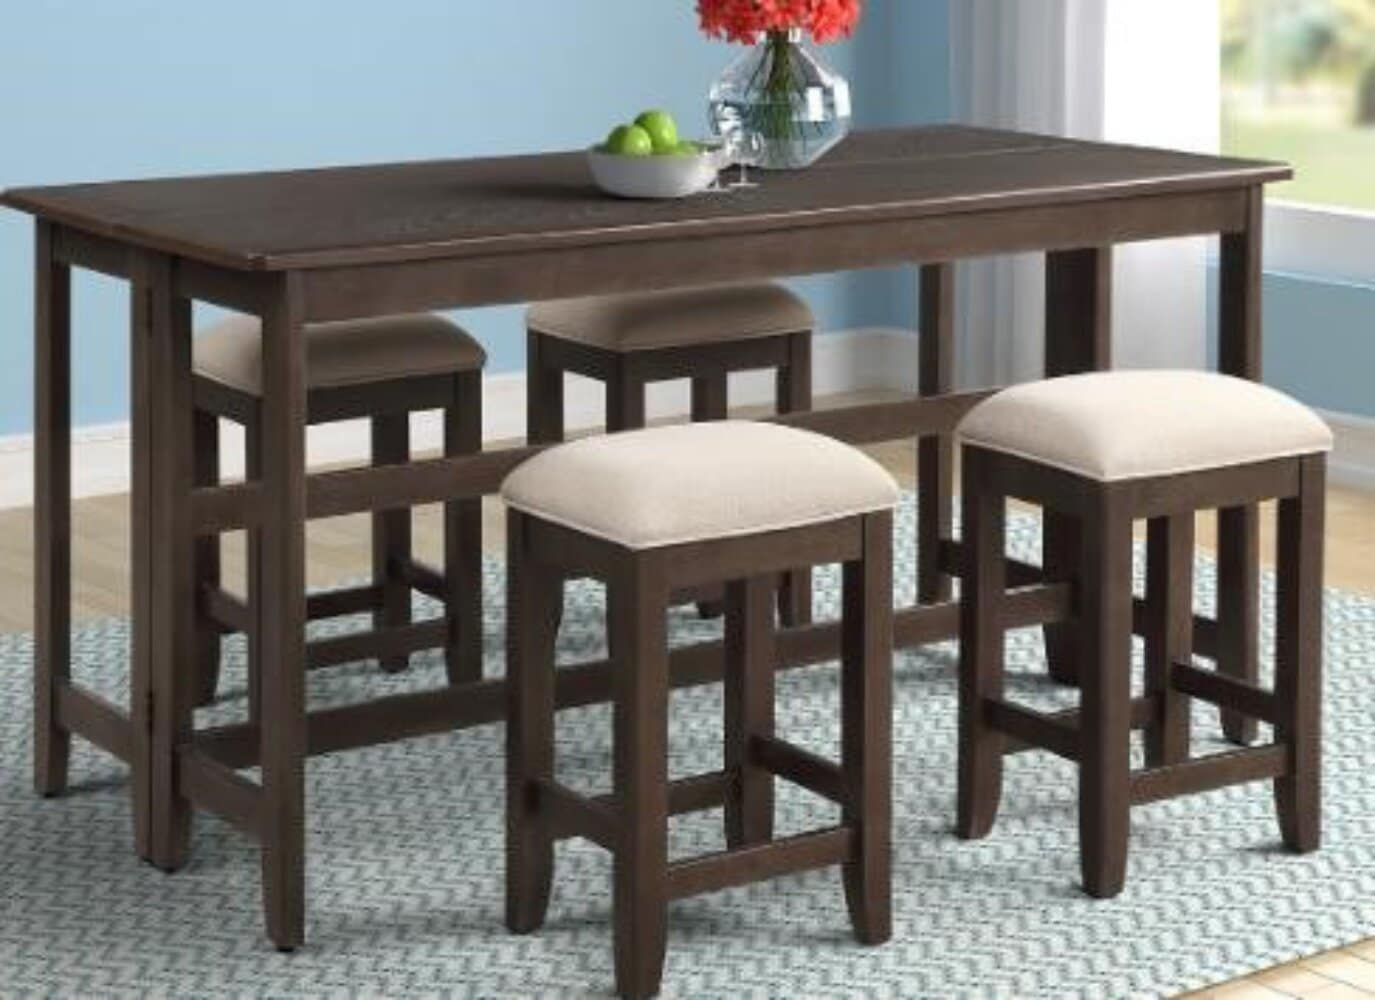 Use Stools to Keep Things Tidy